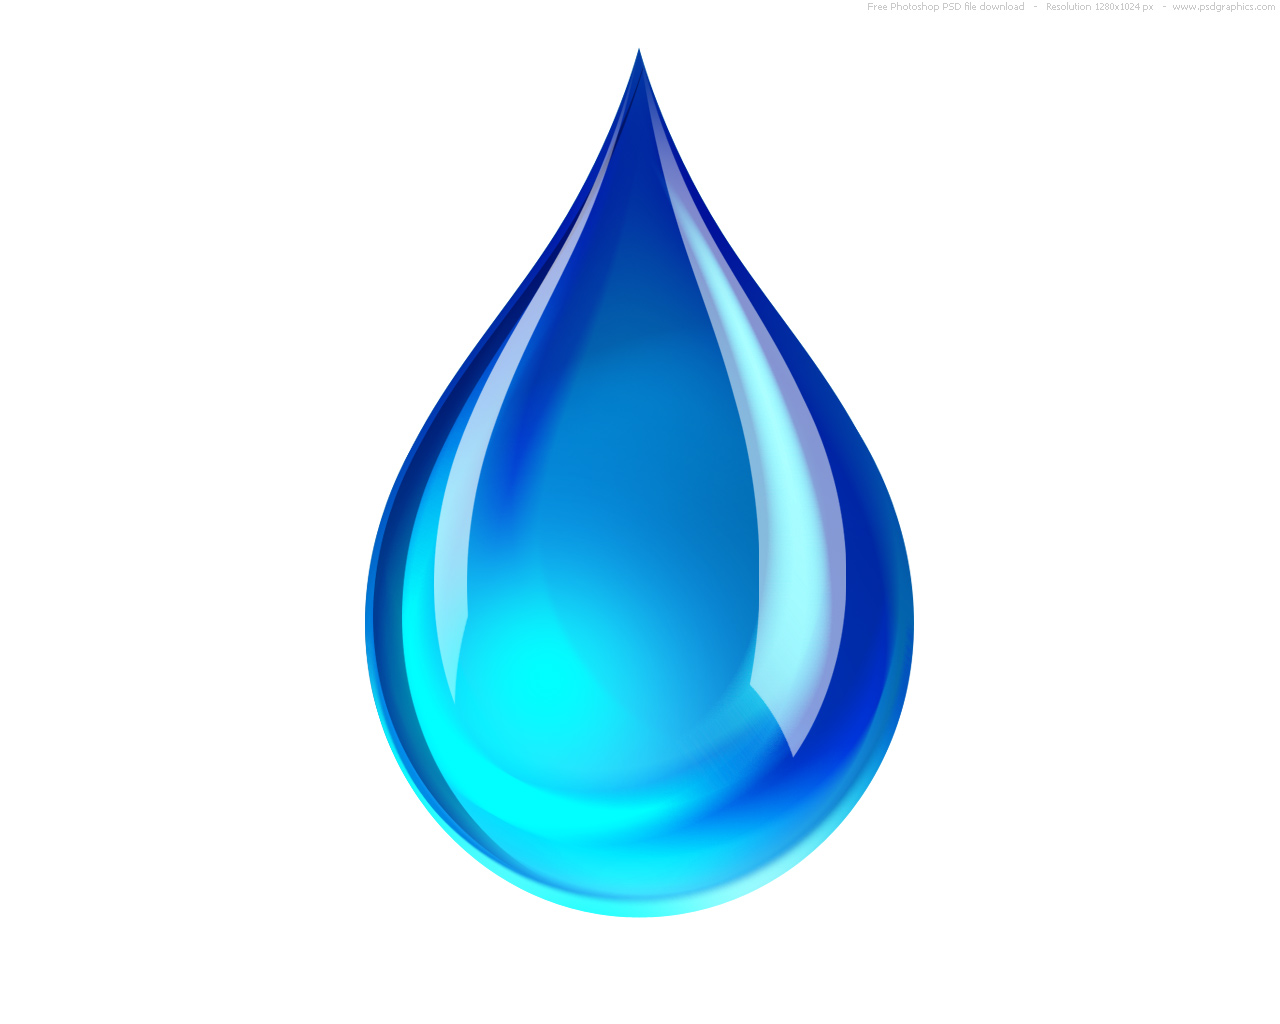 Water icon clipart vector transparent Water Department   City of Fairbury vector transparent